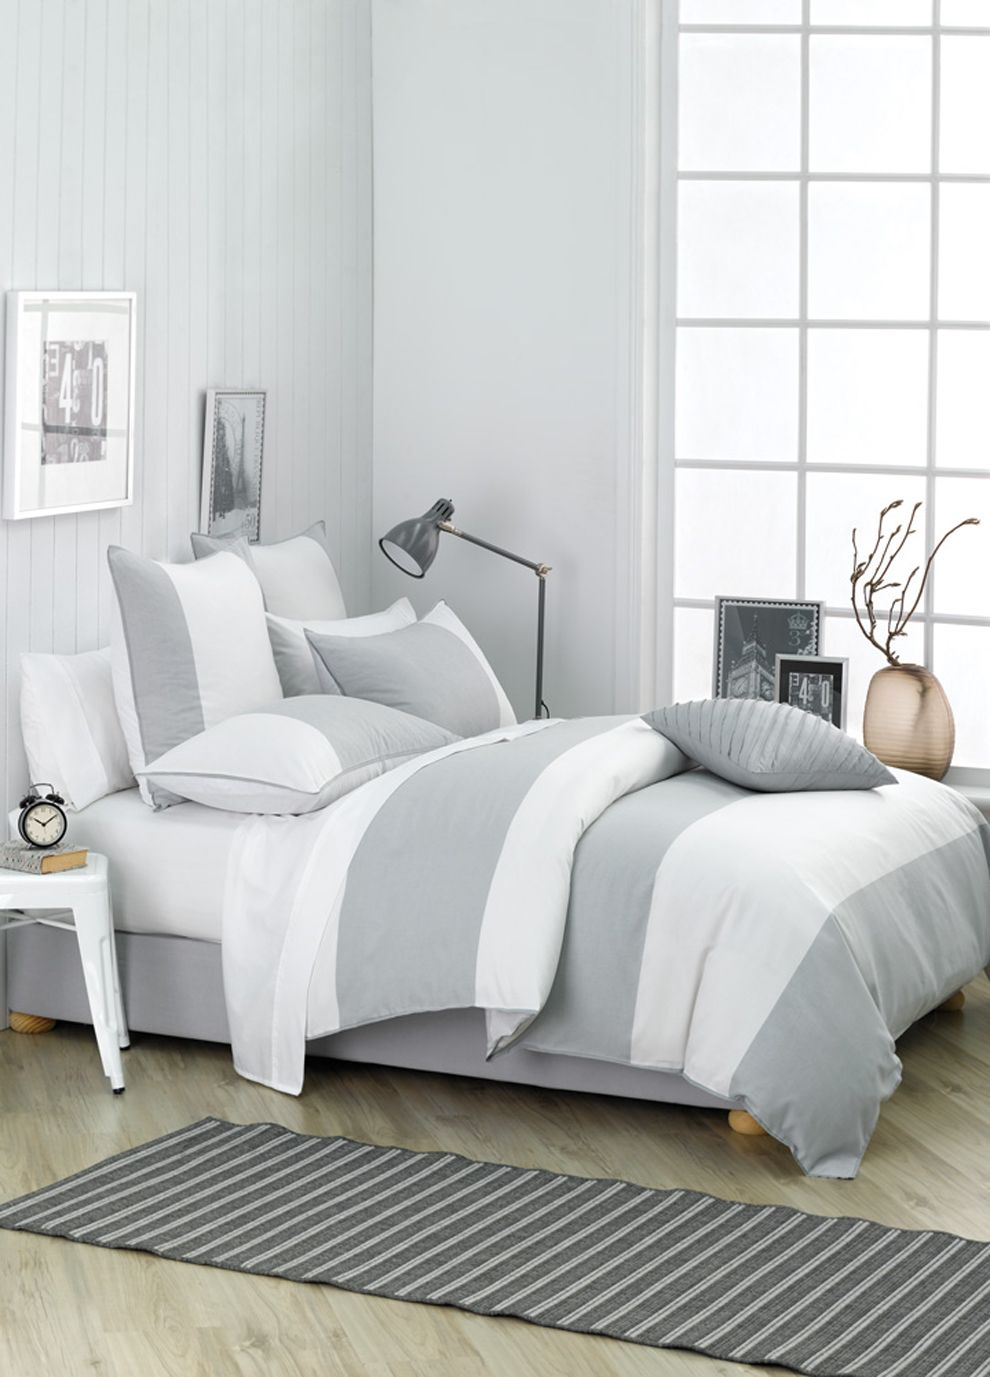 White And Grey Quilt Cover Set Quilt Cover Sets Quilt Cover Bed Bath And Beyond